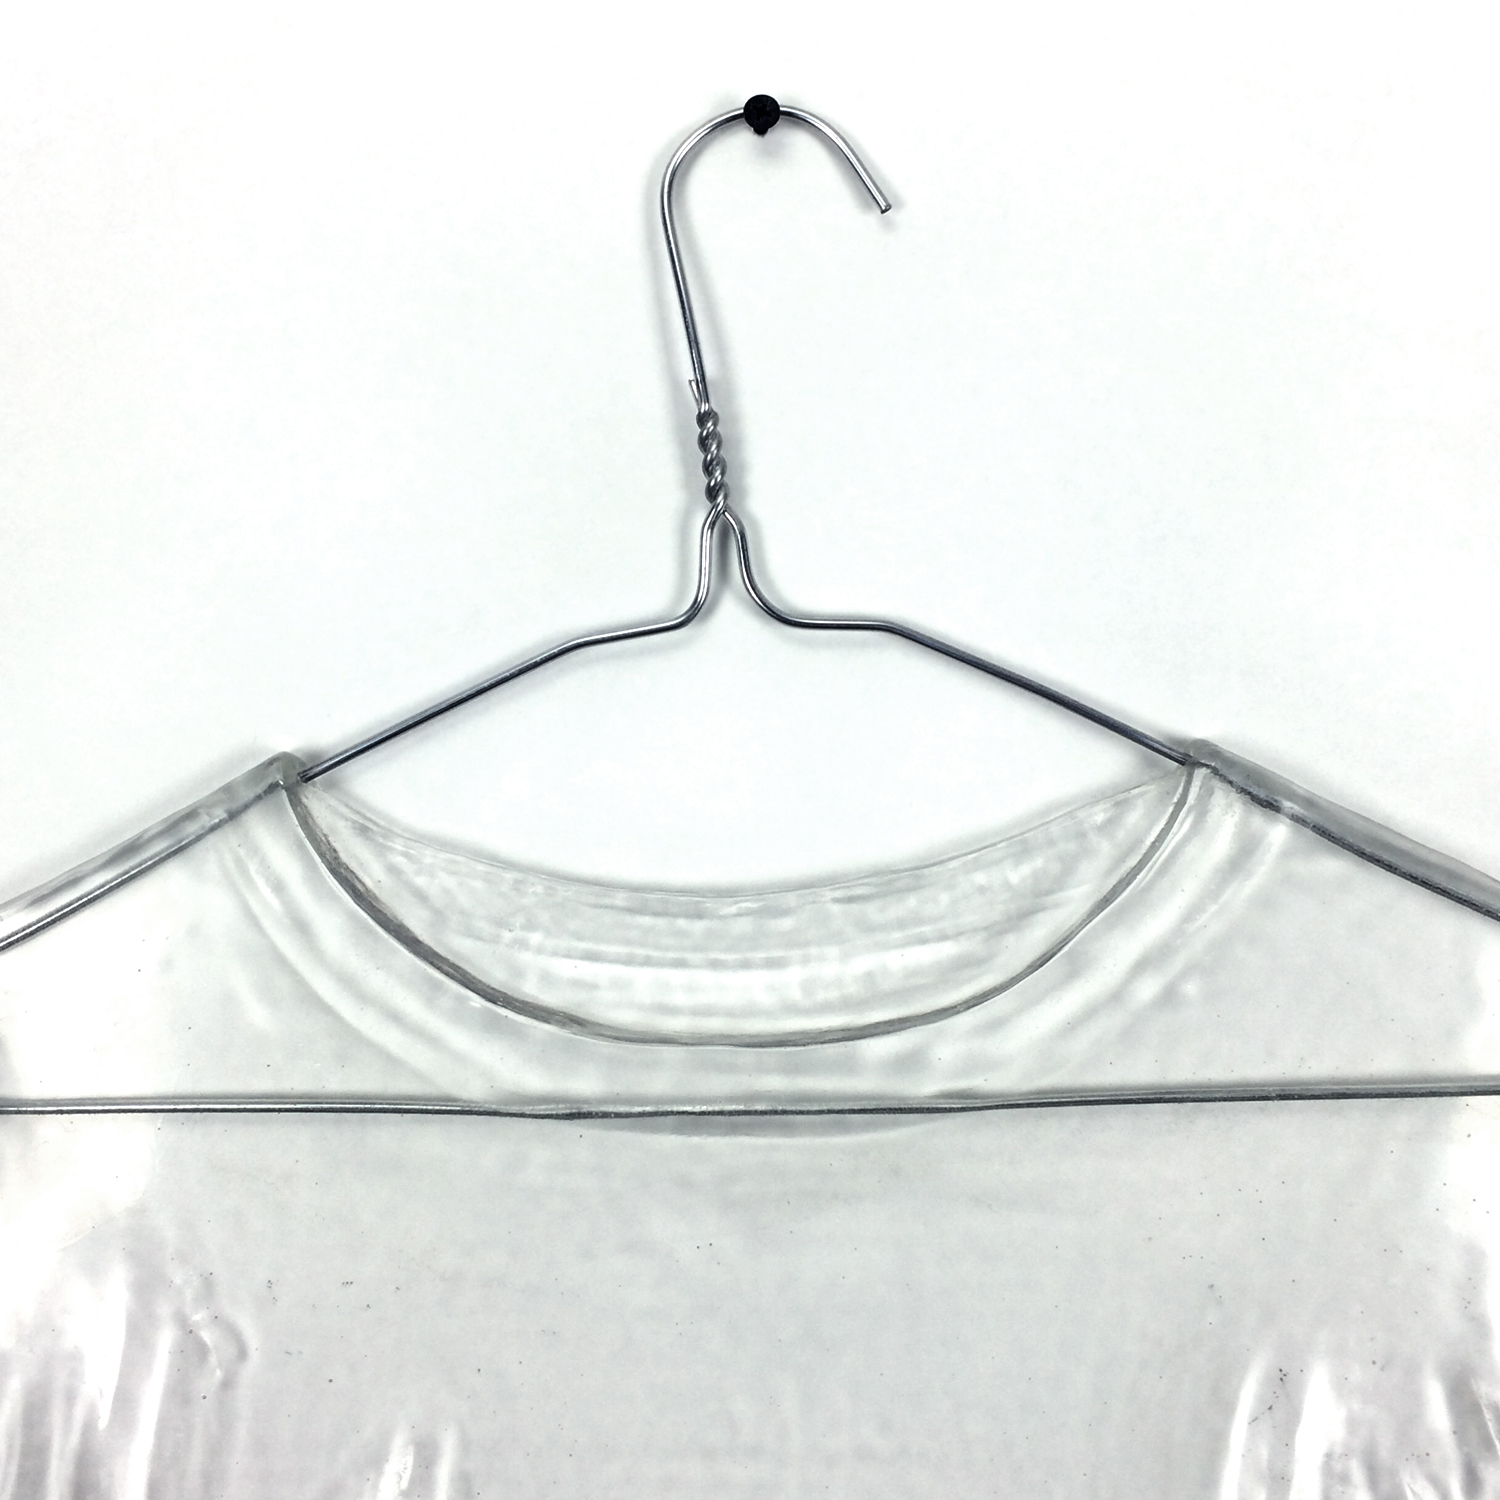 all shirts 1500 x 1500 - hanger and graphic clr.jpg